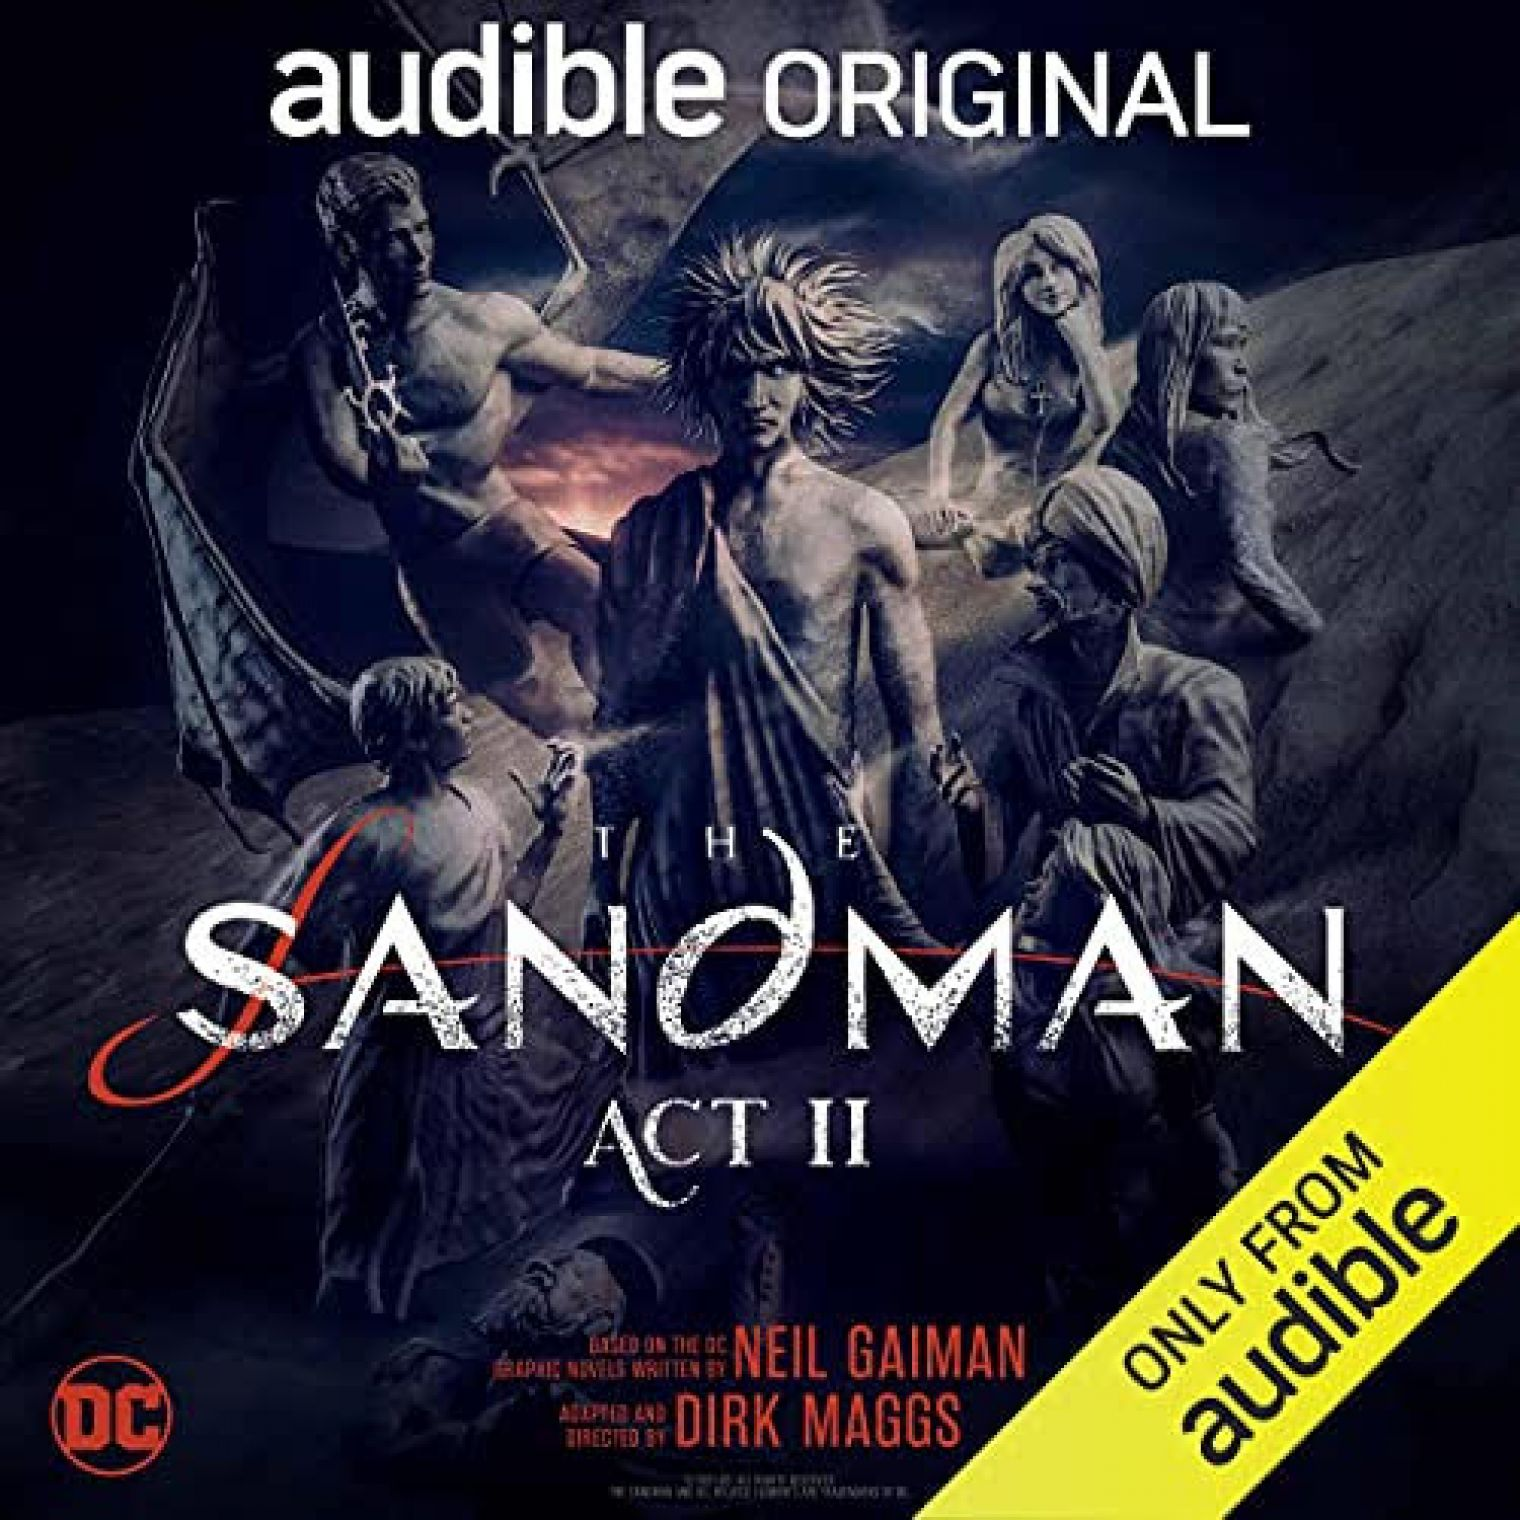 Audible's blockbuster adaptation of 'The Sandman: Act II' is released today, featuring Shai Matheson as Mark Twain